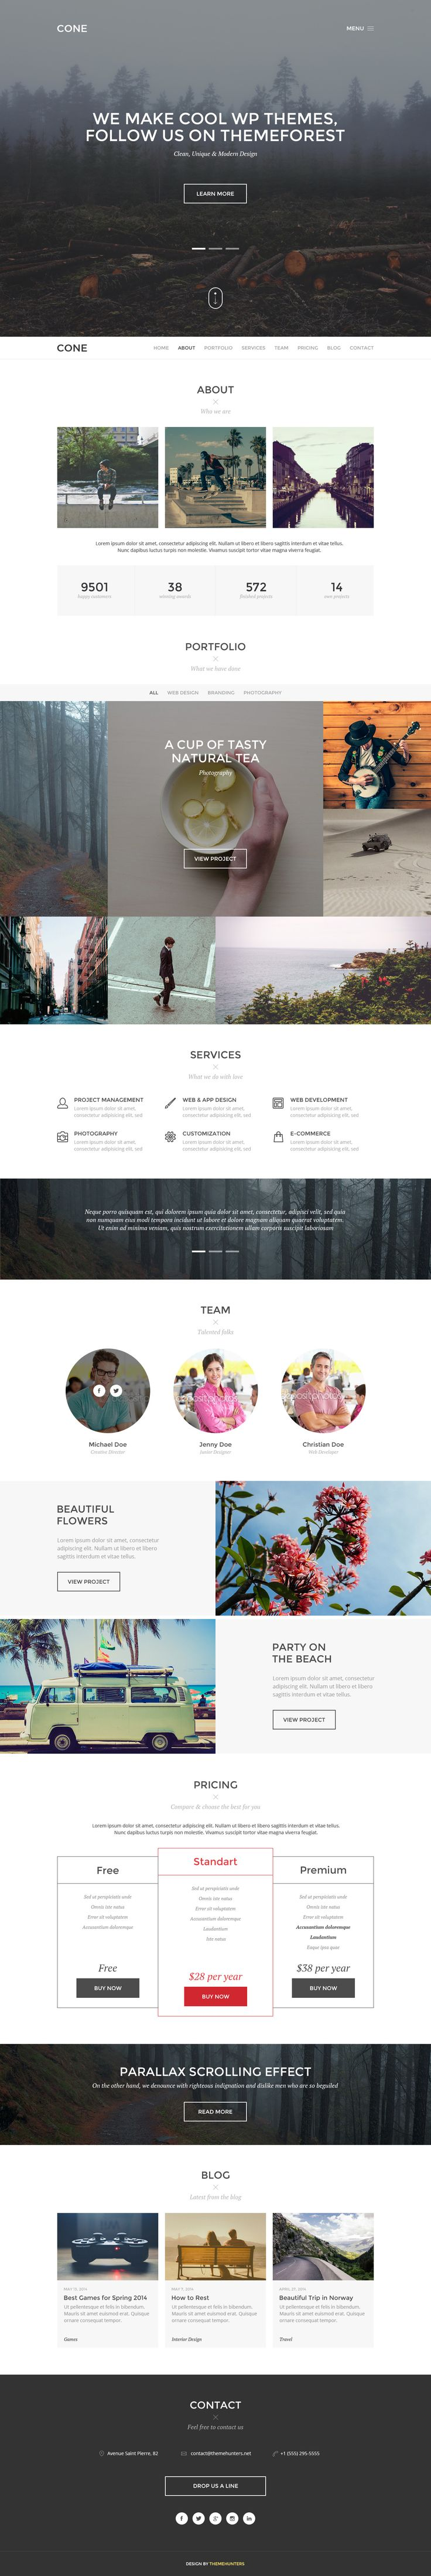 CONE - Onepage PSD Template